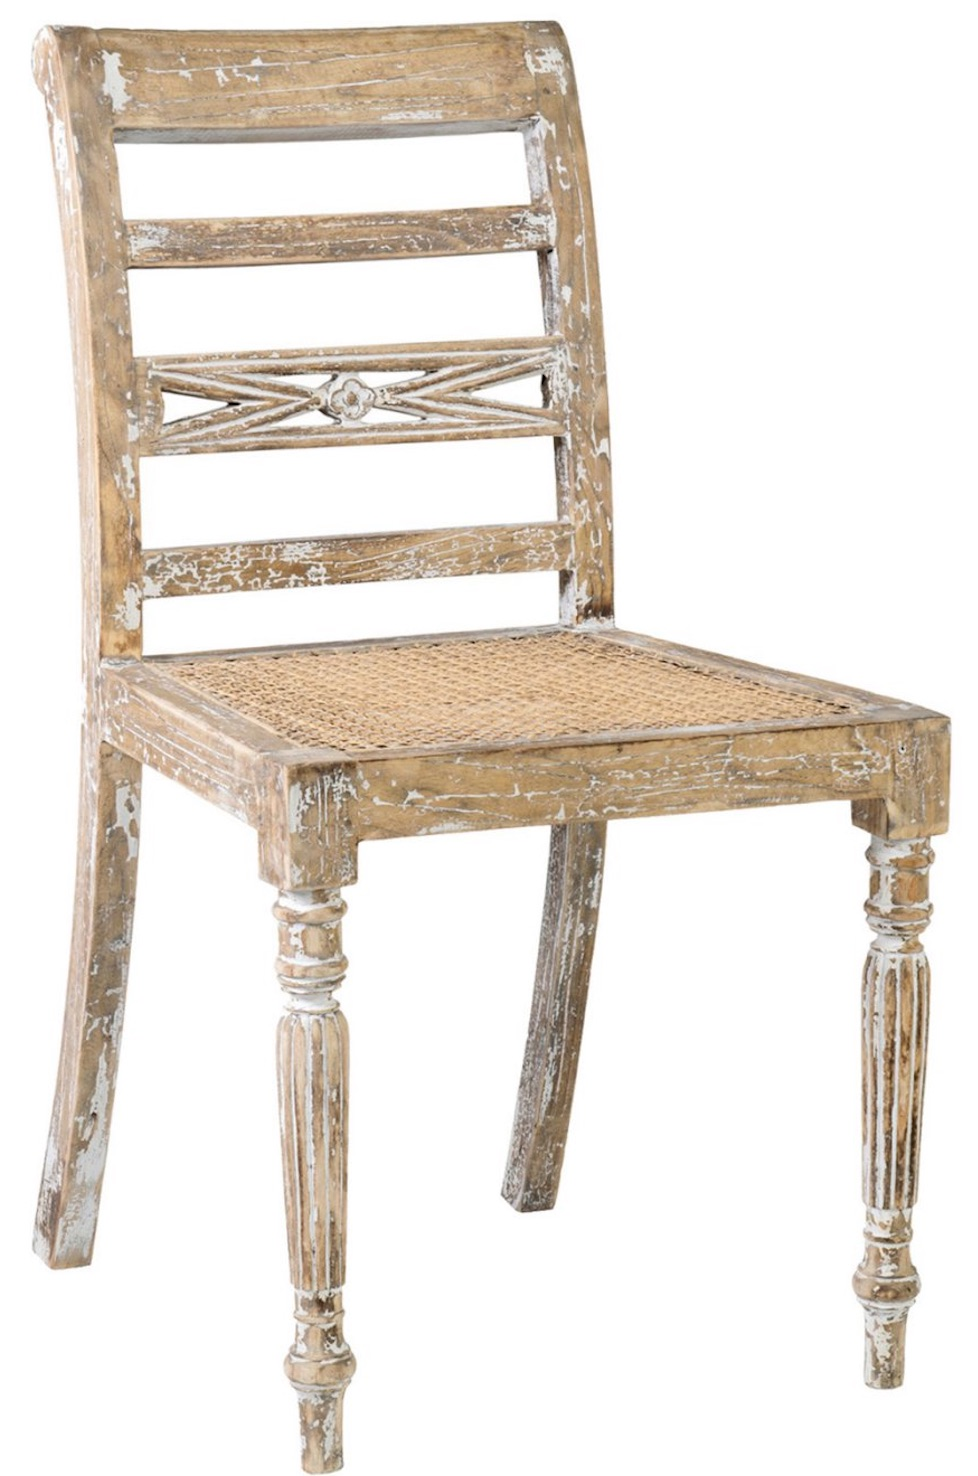 Dining Chairs for Family Gatherings Alexandra Dining Side Chair #Farmhouse #Chairs #FarmhouseChairs #RusticDecor #CountryDecor #FarmhouseDecor #VintageInspired #DiningChairs #FamilyDinners #FamilyMeals #FamilyTime